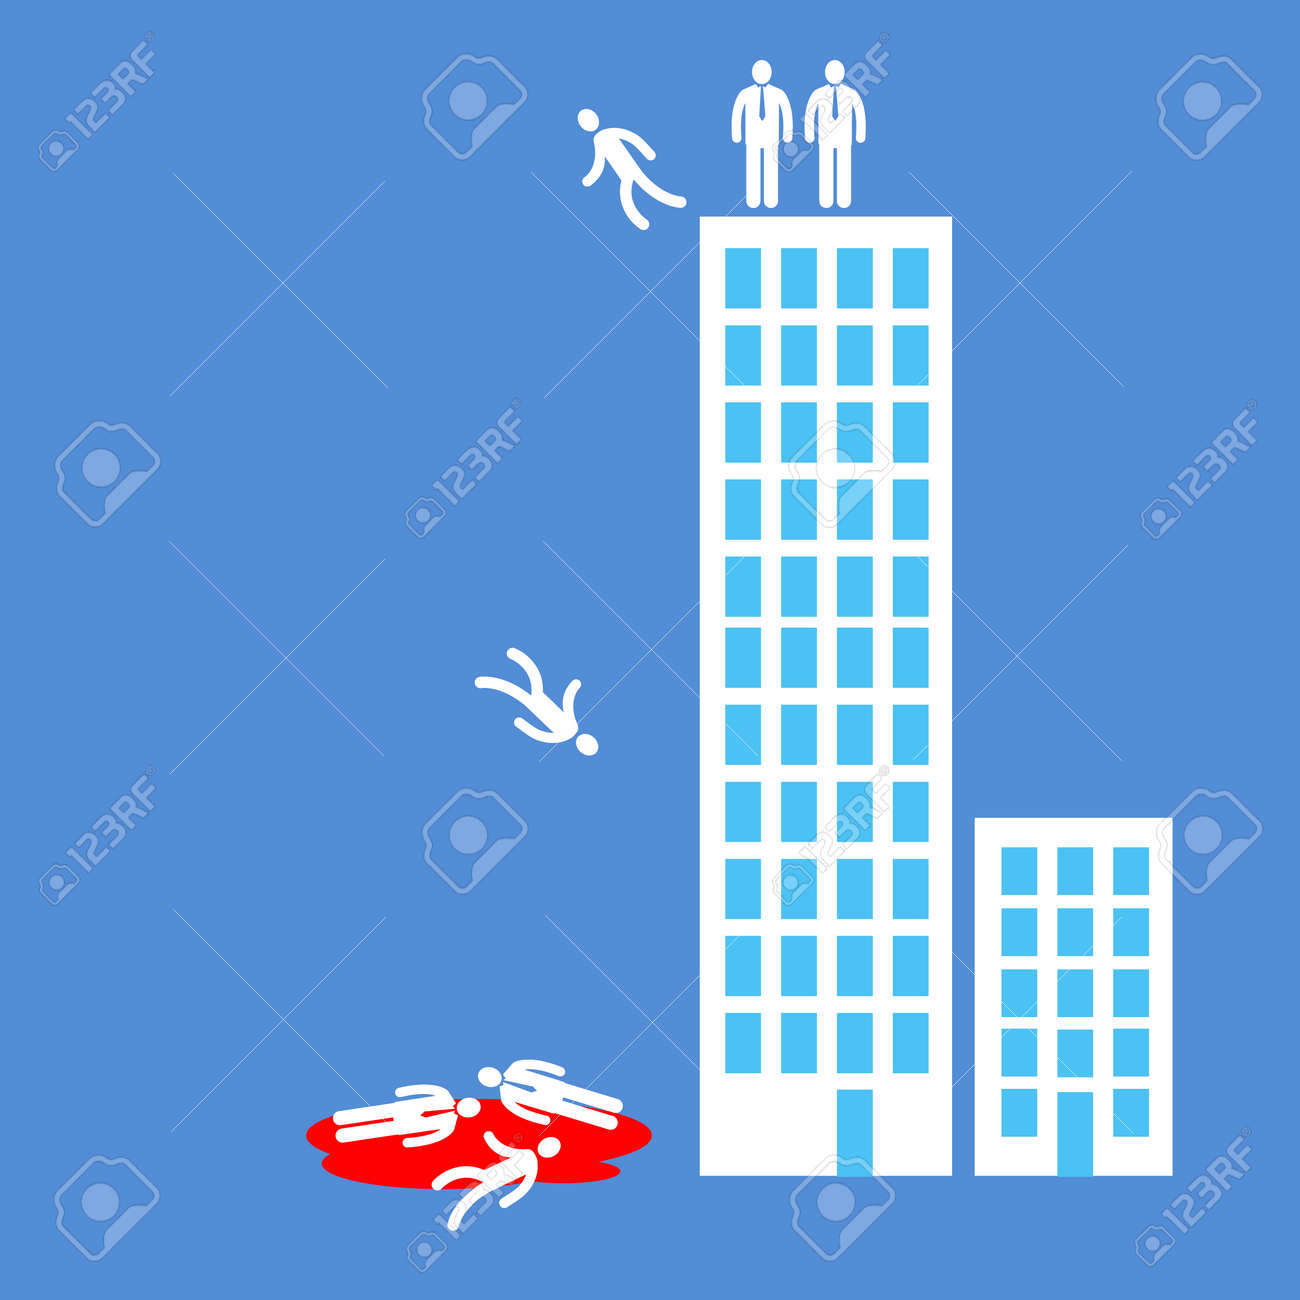 Flat Design Business Icon Of Managers Jumping From Office Building